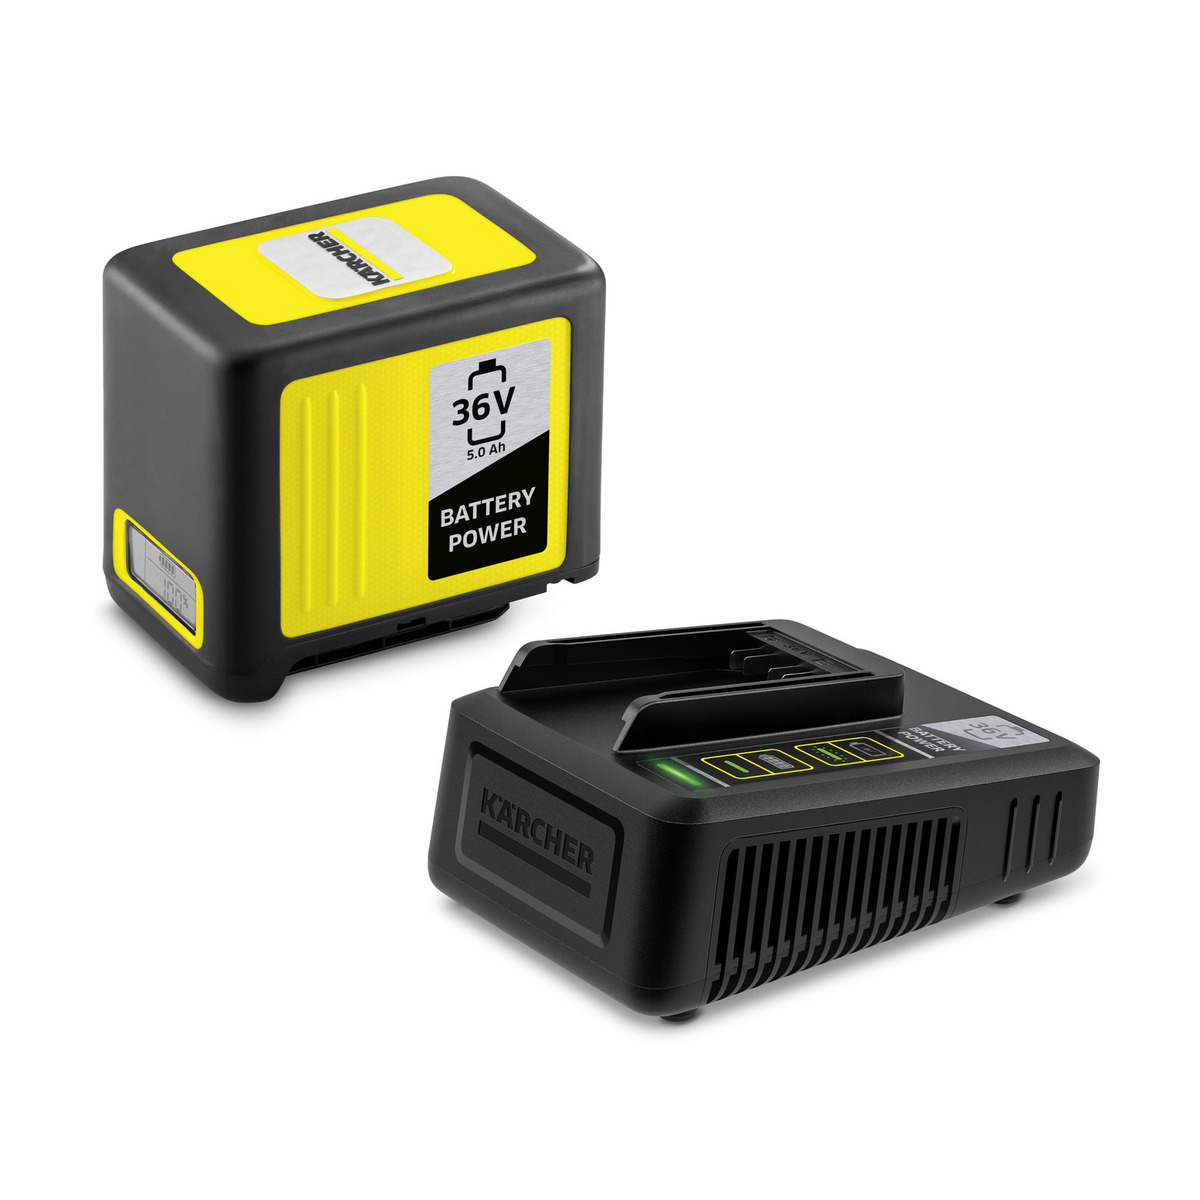 Starter kit battery power 36V / 5,0AH